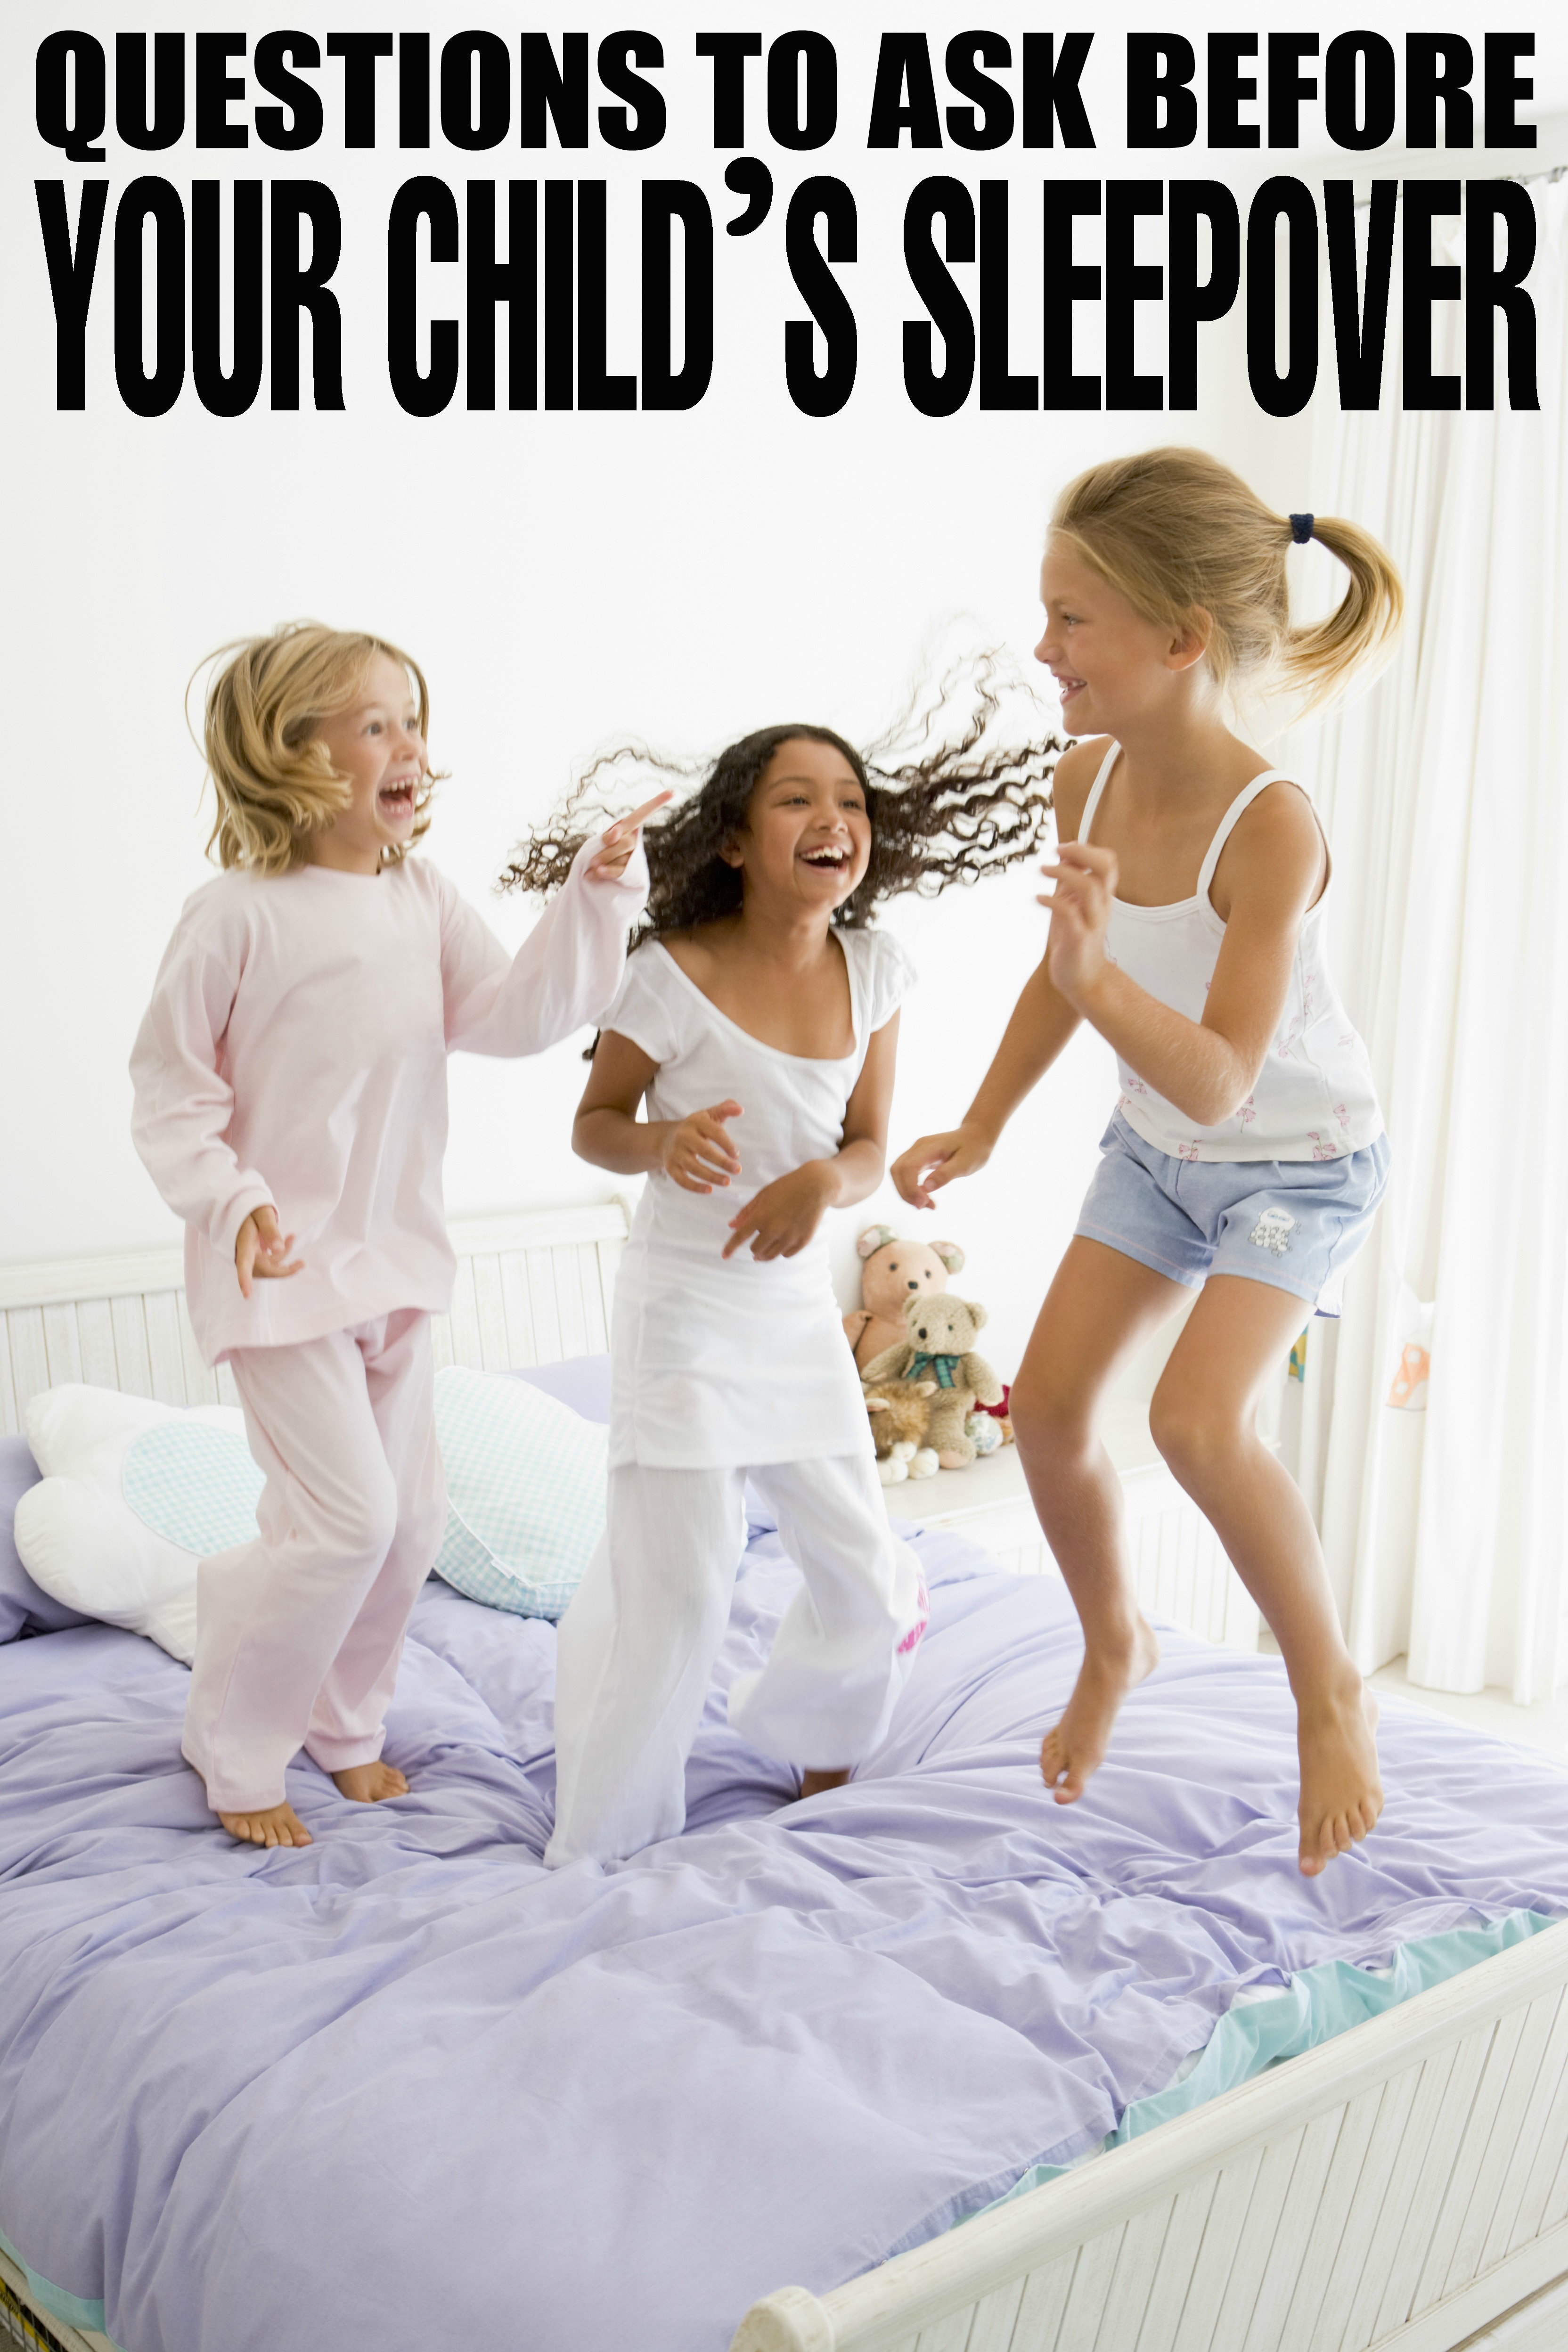 Questions to Ask Before your Child's Sleepover